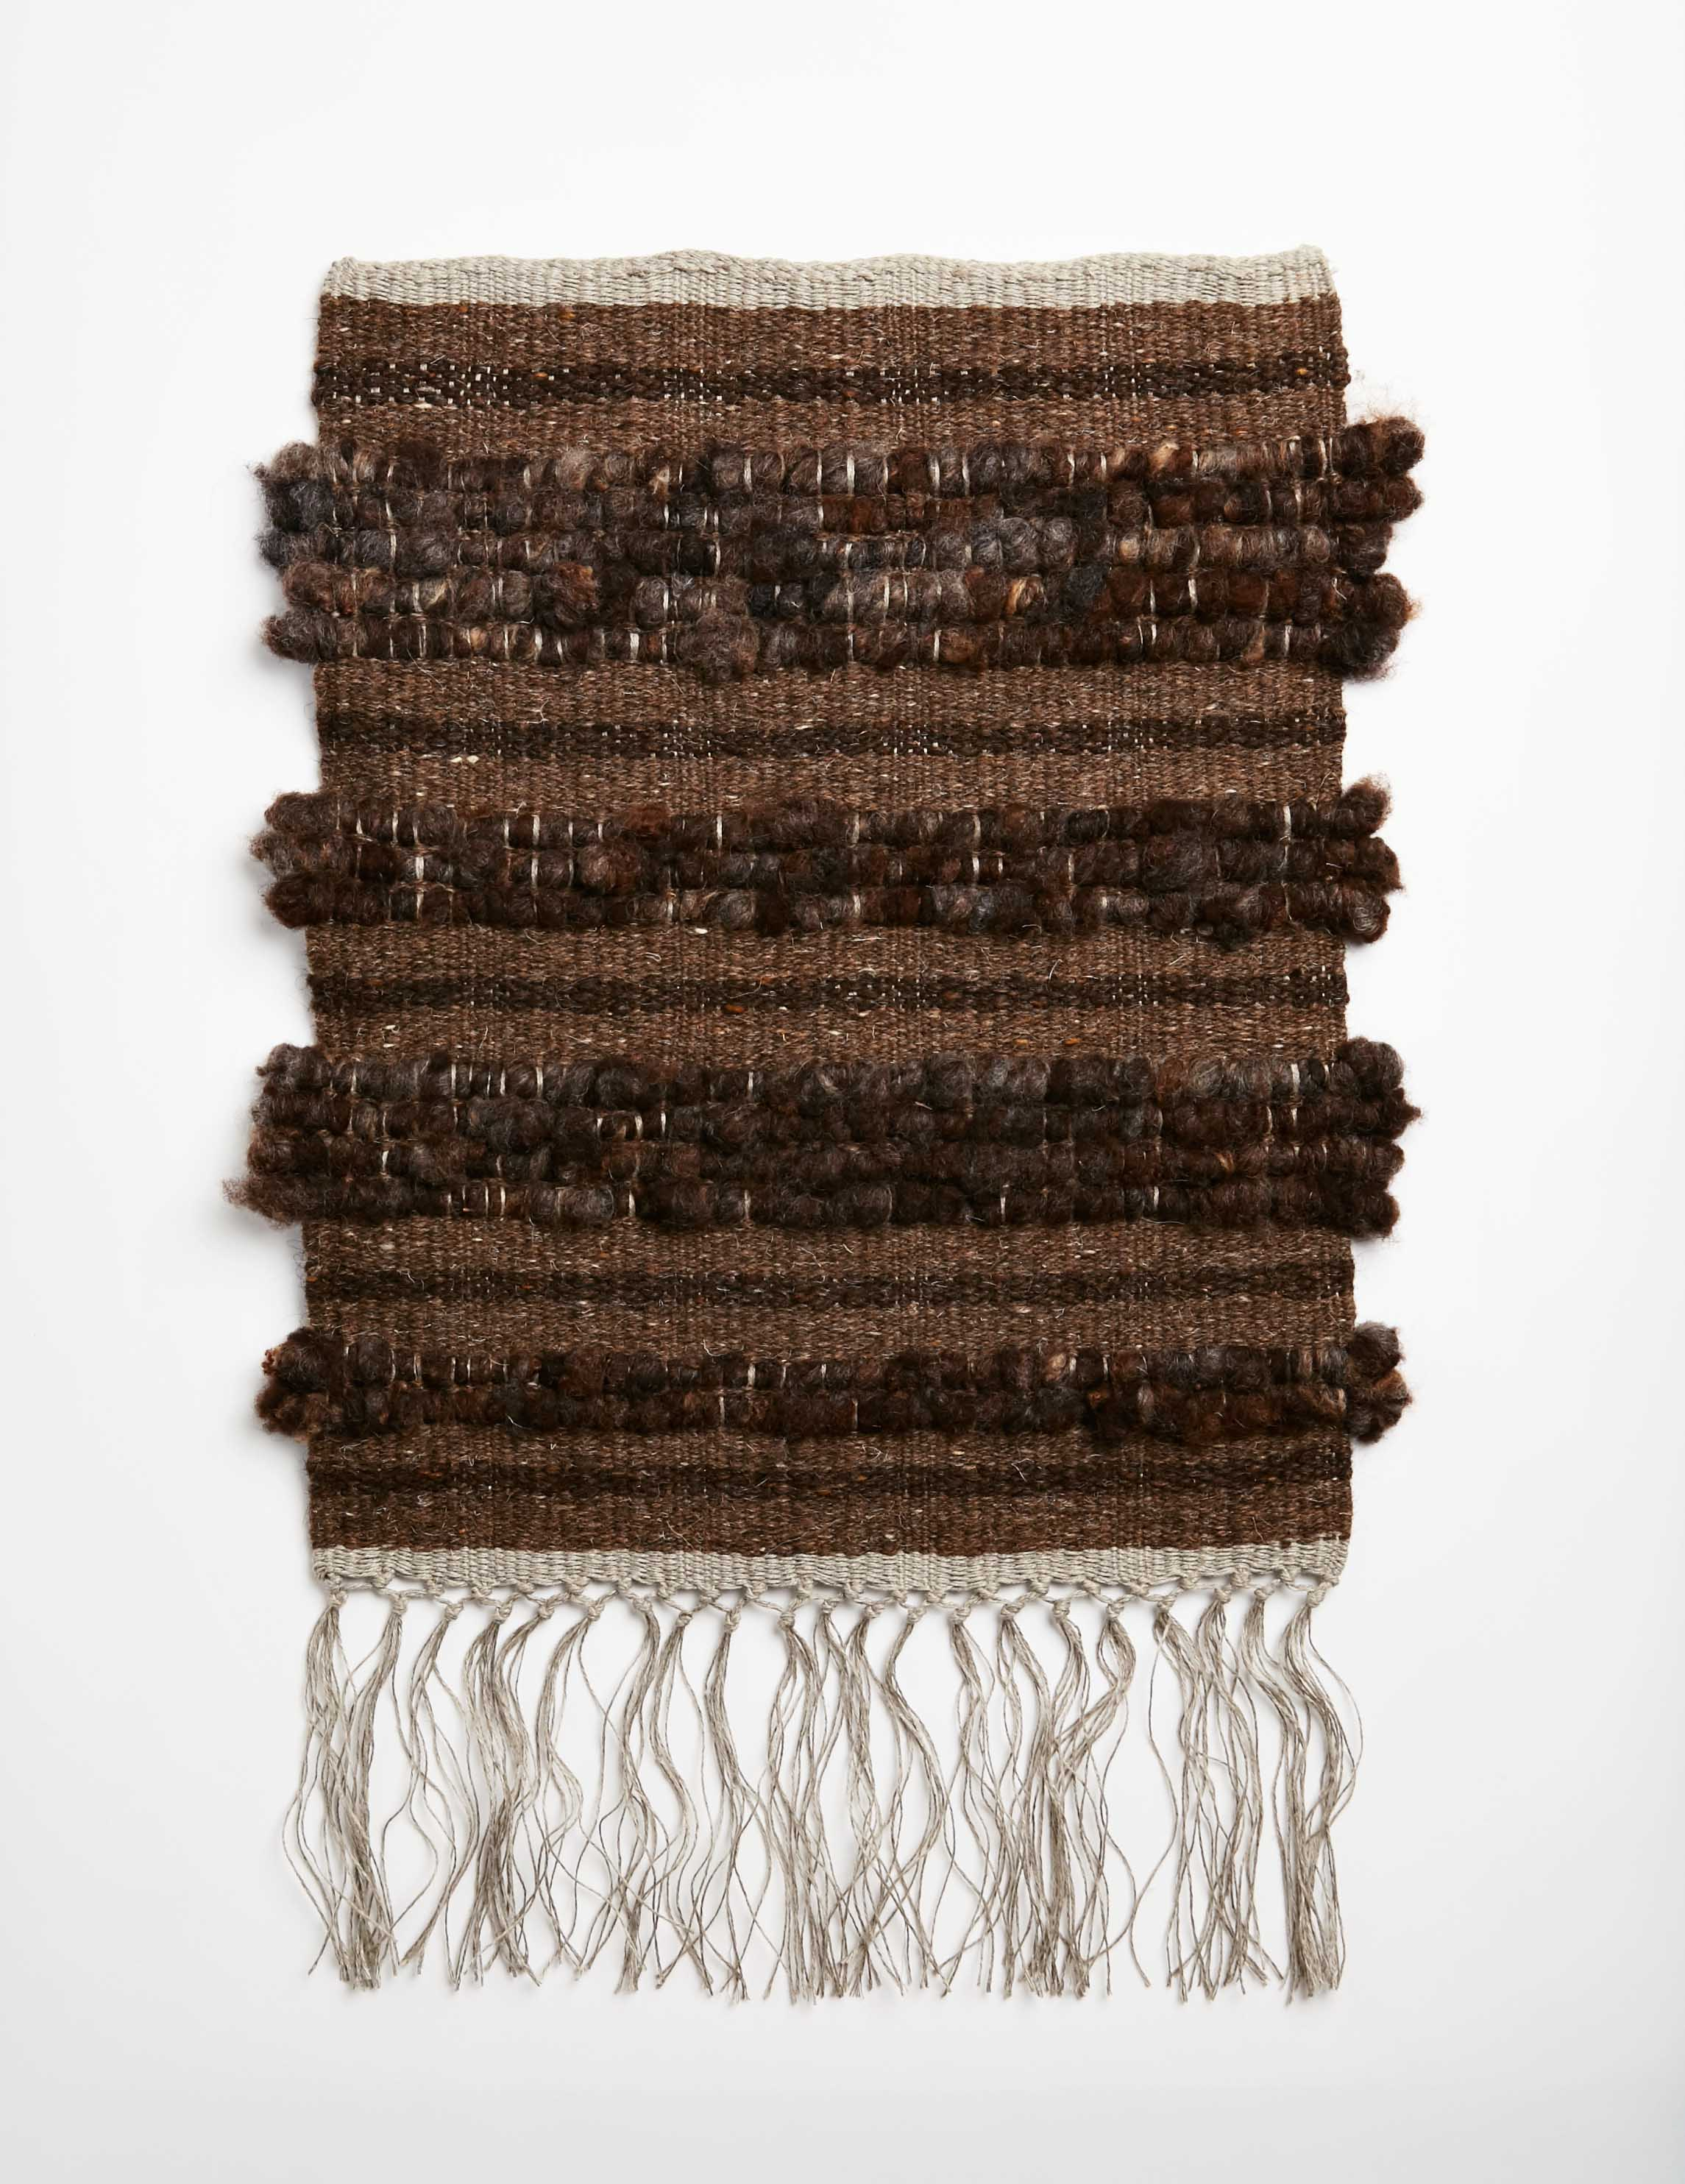 Raw Fleece Wall Hanging - Blackened Peat II